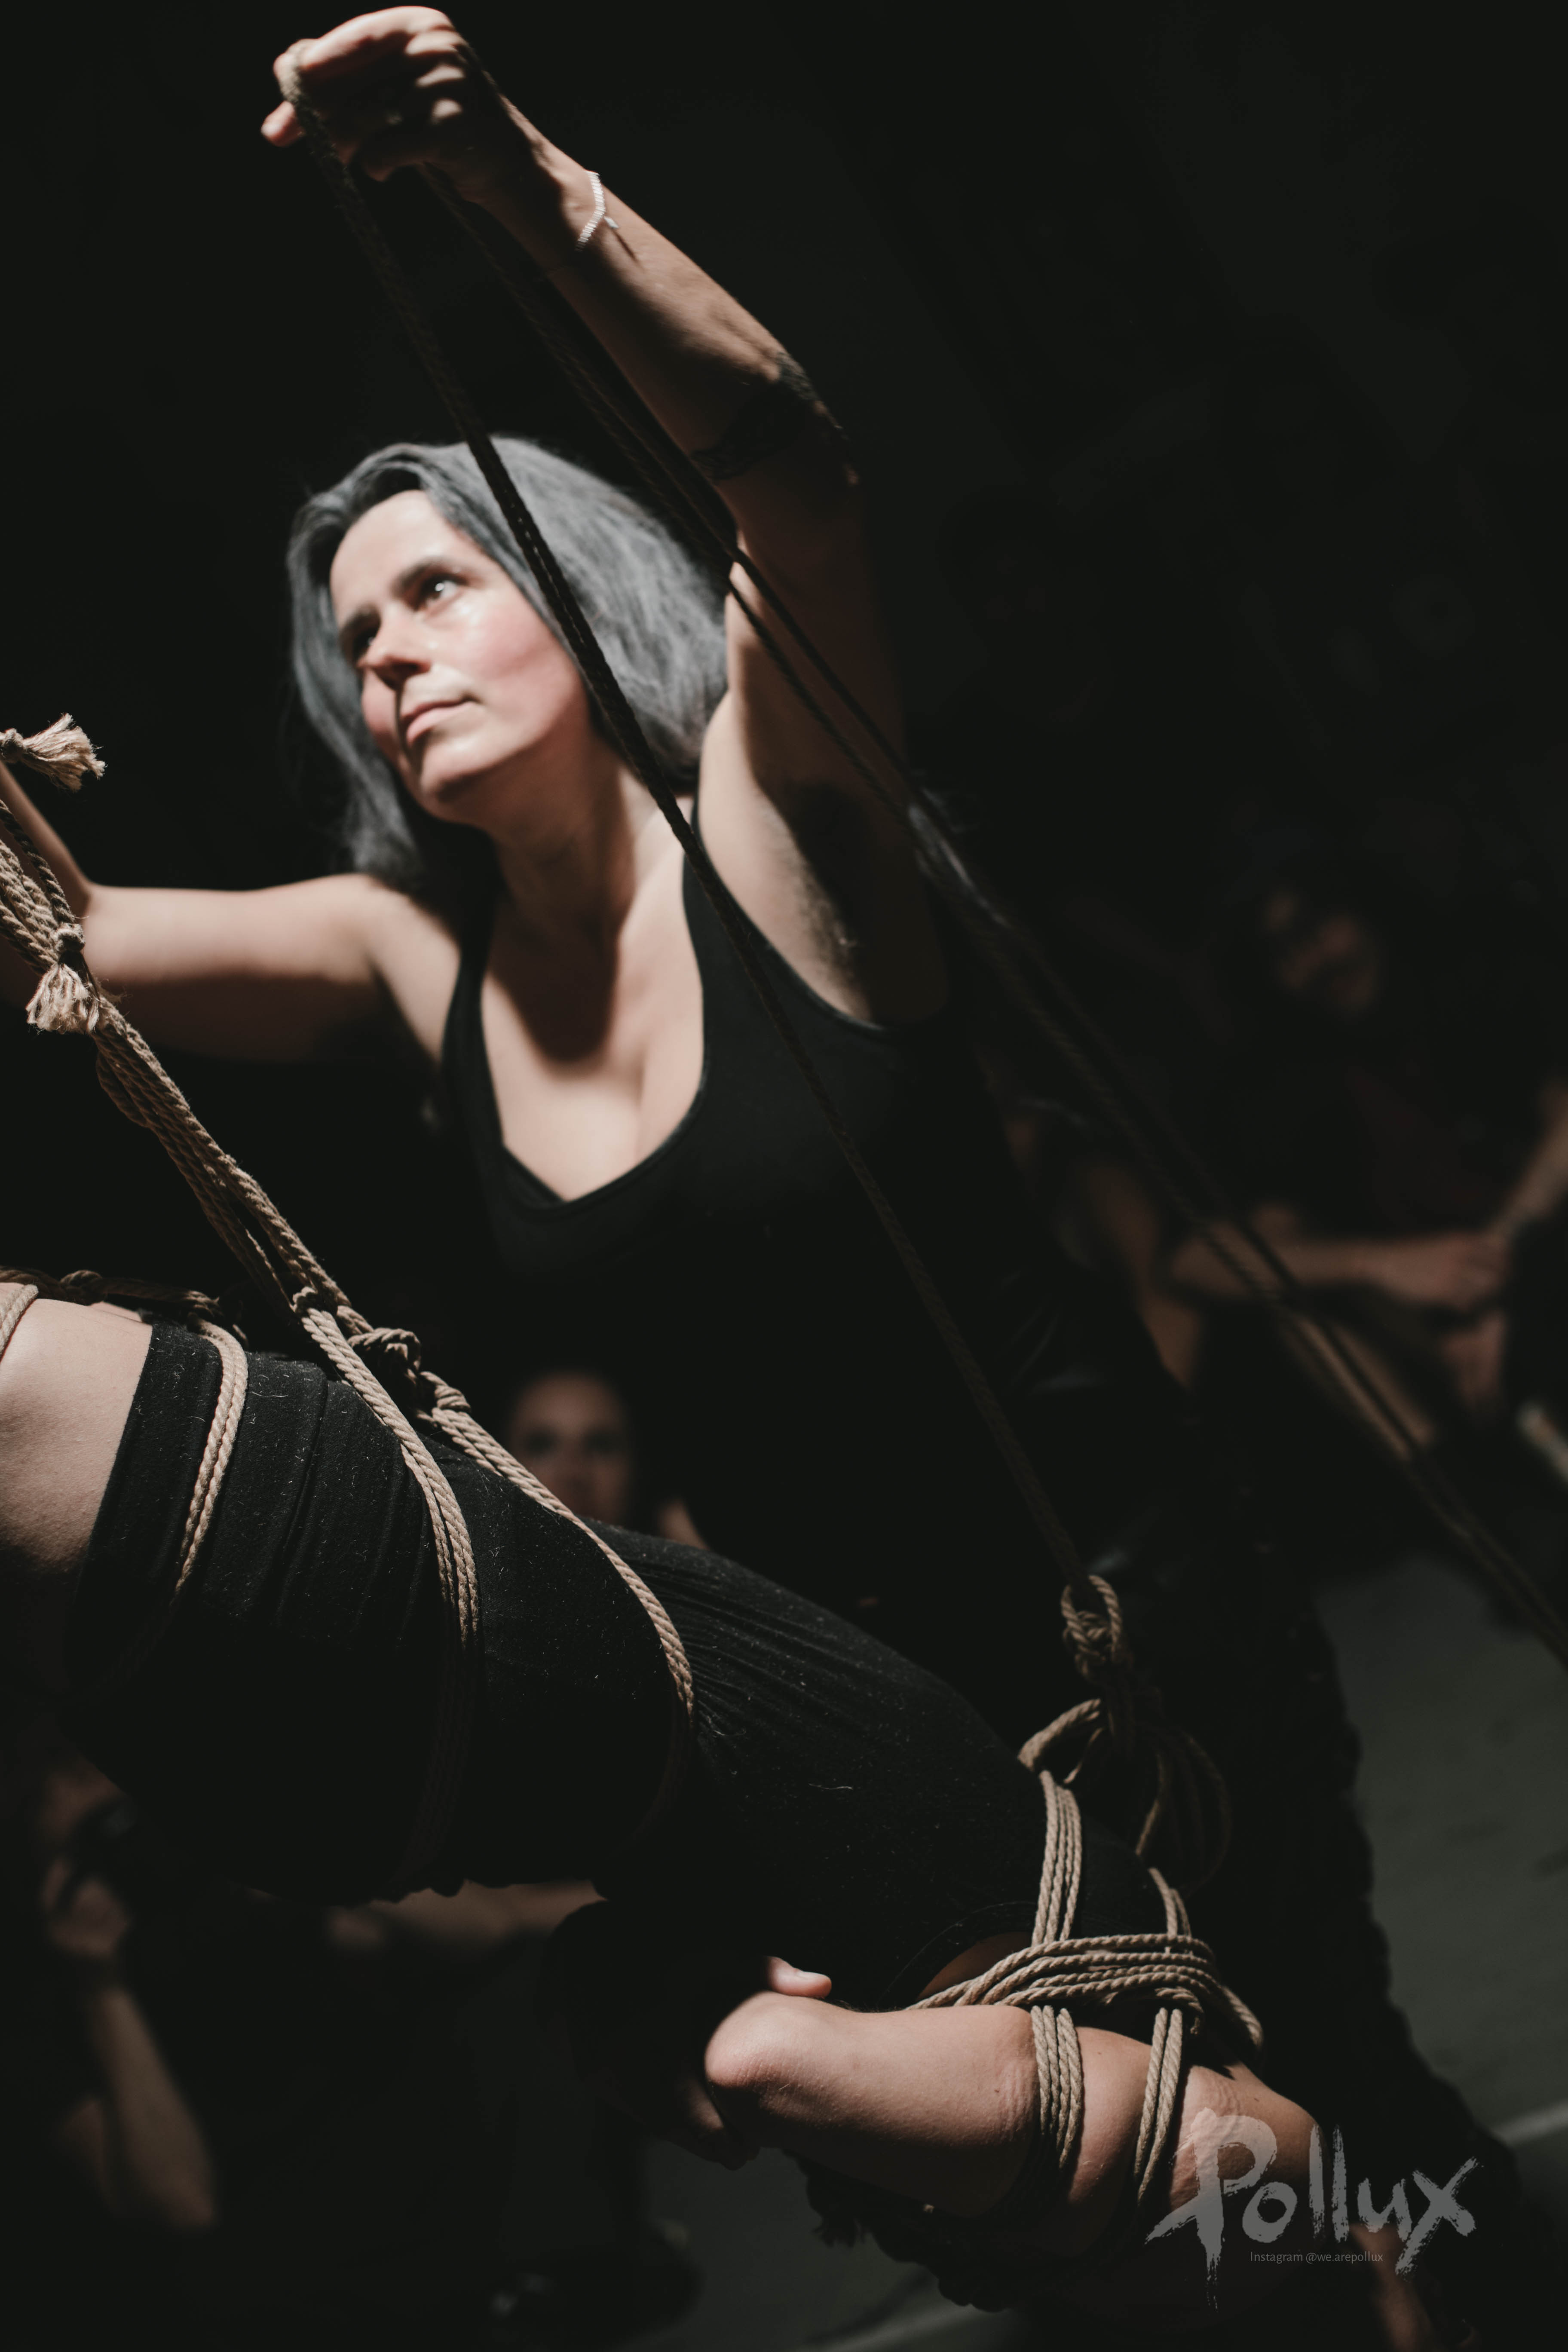 Jo Pollux Bondage performance at Bei Ruth in 2017 with Lou Smorals. Photo by https://www.instagram.com/we.arepollux/